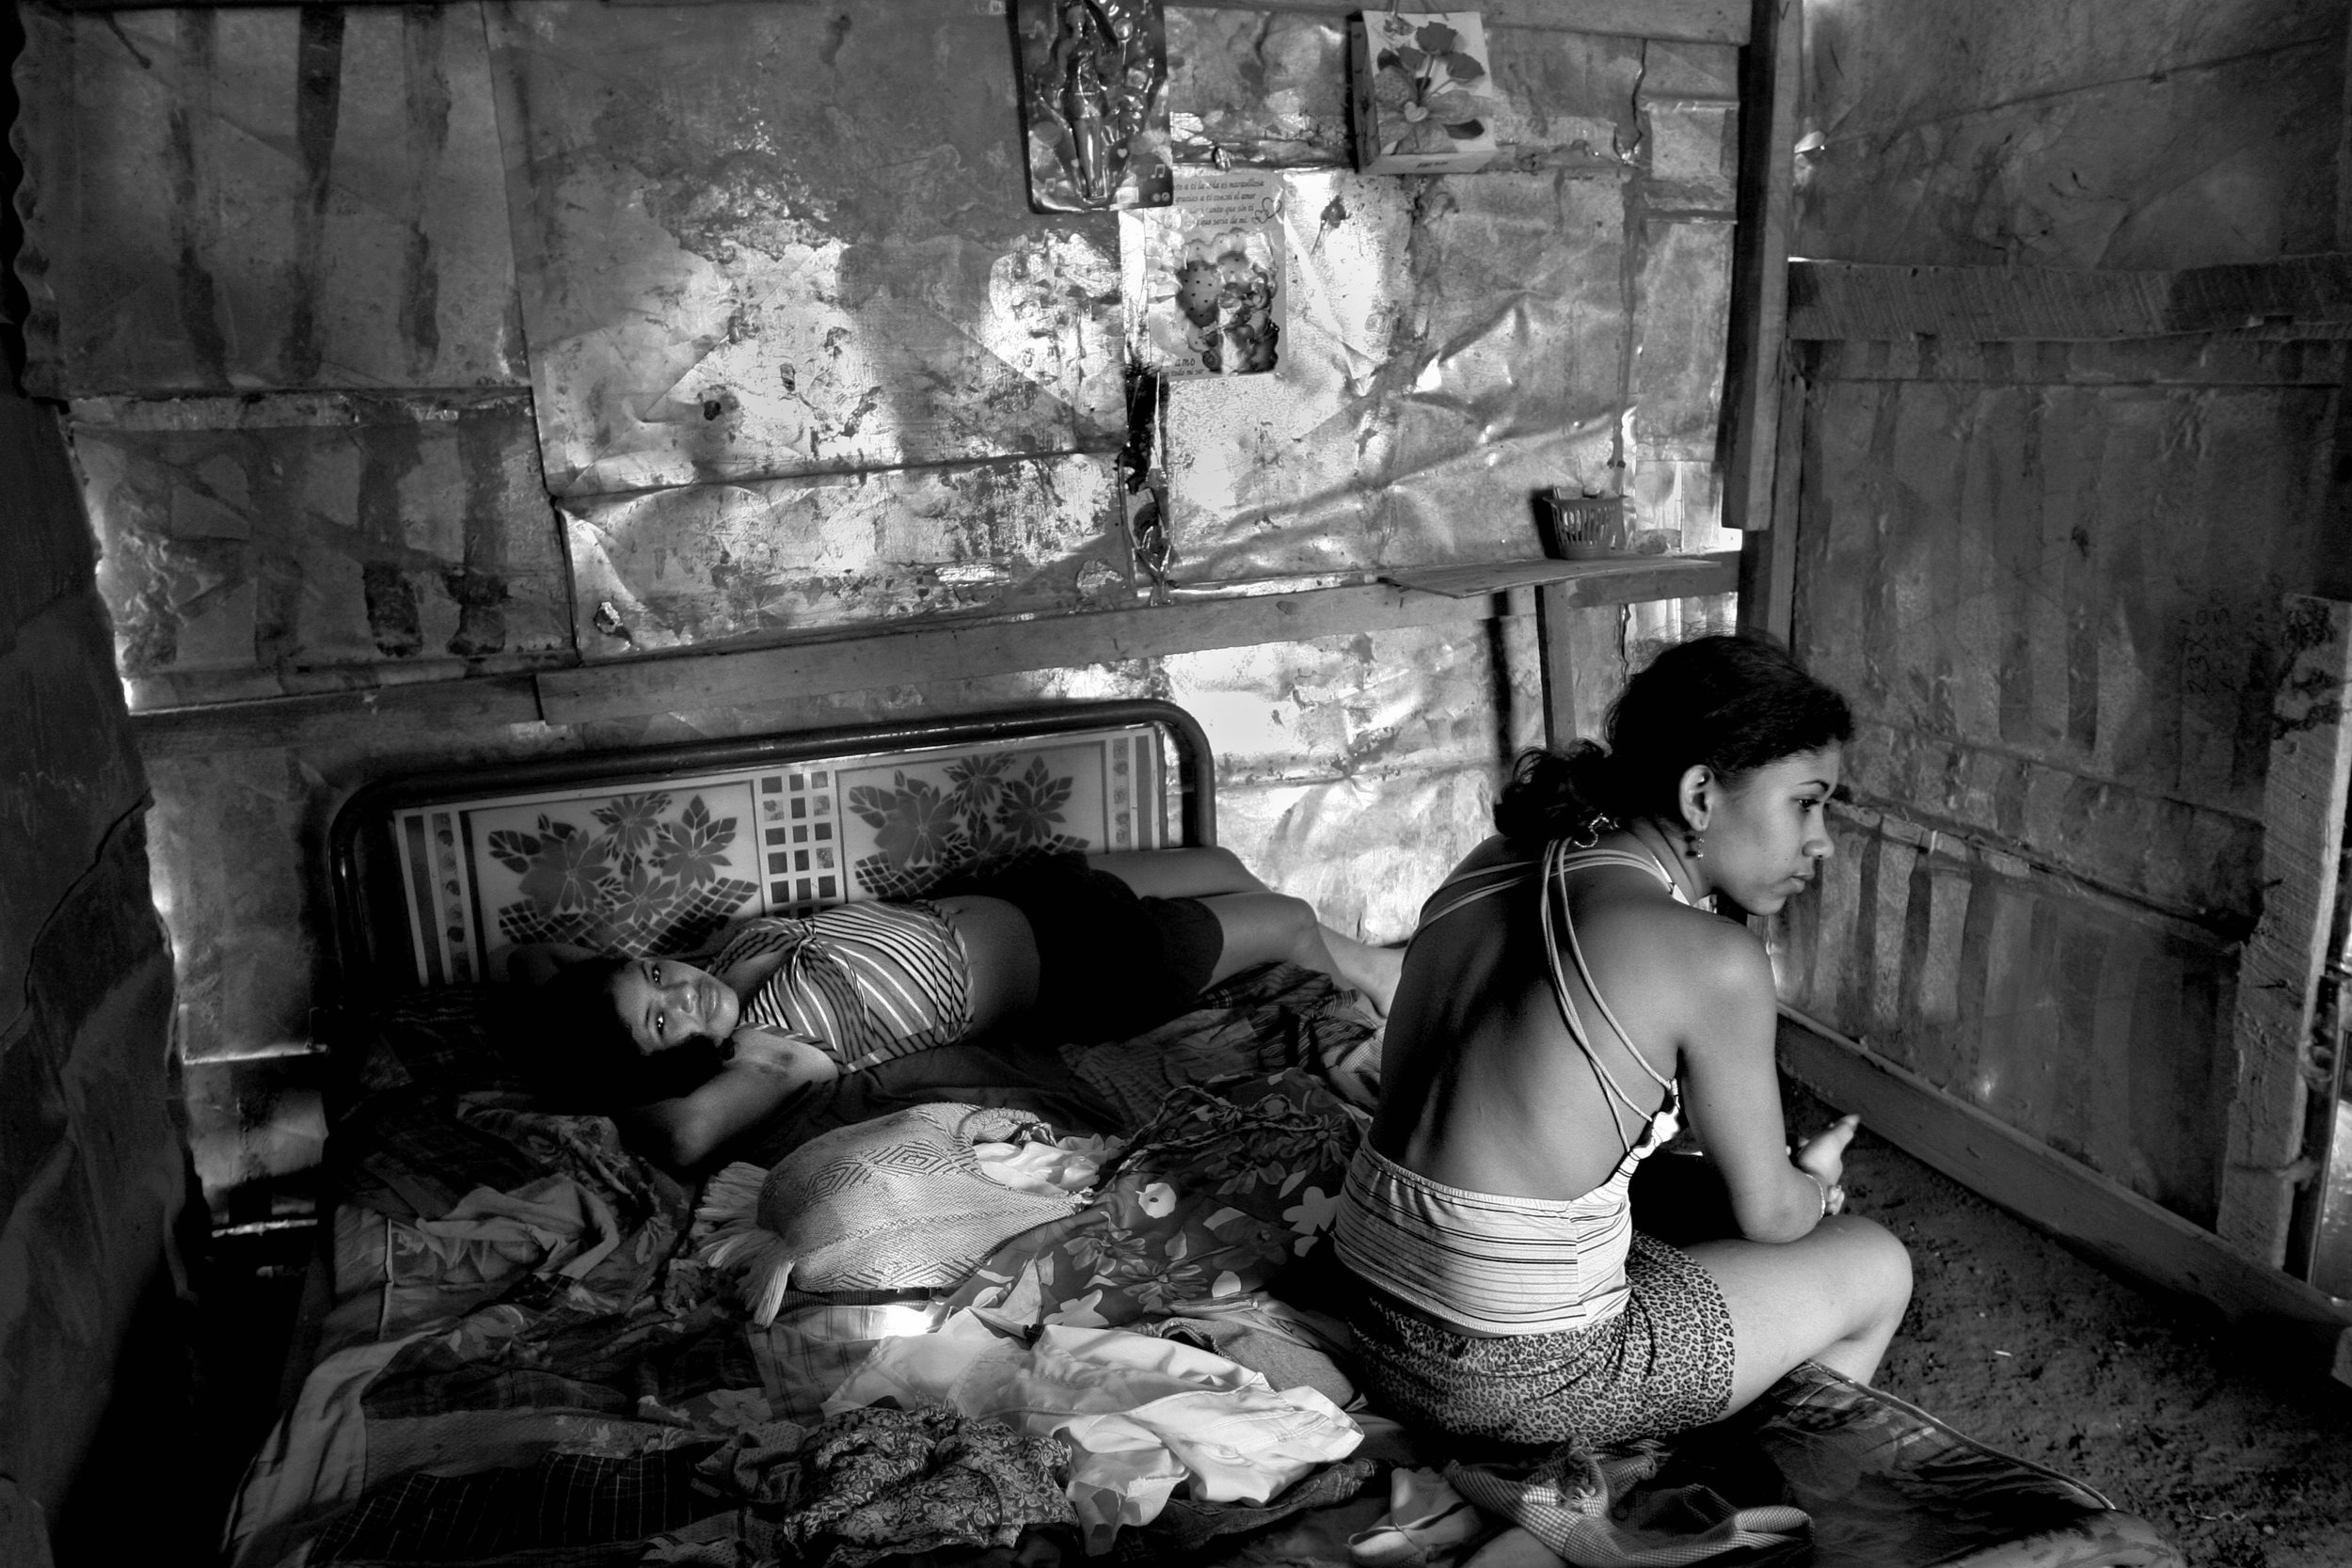 "Ivania Gonzalez, 16, right, and Rozievel, 15, both child prostitutes sit together on the bed in the room they share. Rozievel says, ""Two months after I started working my mother asked me how I got money and I told her. My mom is 60 and a diabetic and she can't work. She agreed there was no other alternative. I finished third grade. I dropped out when we didn't' have any money.  I go out every night and I make 100 -150 Cordoba's/night."""